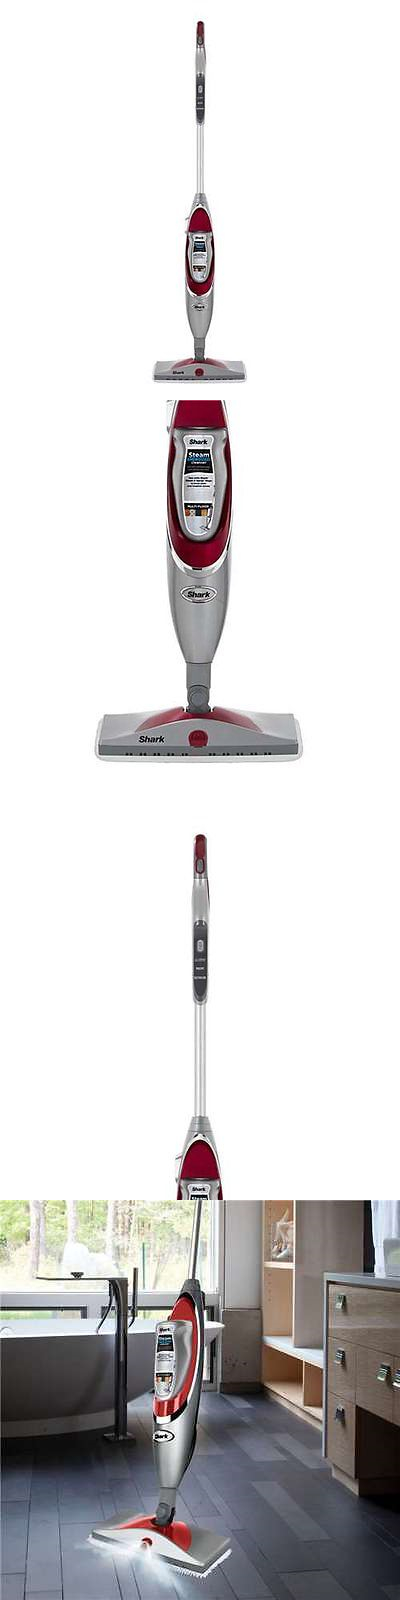 carpet and floor sweepers shark pro steam and spray 3 mode electronic control cleansing - Shark Sweepers